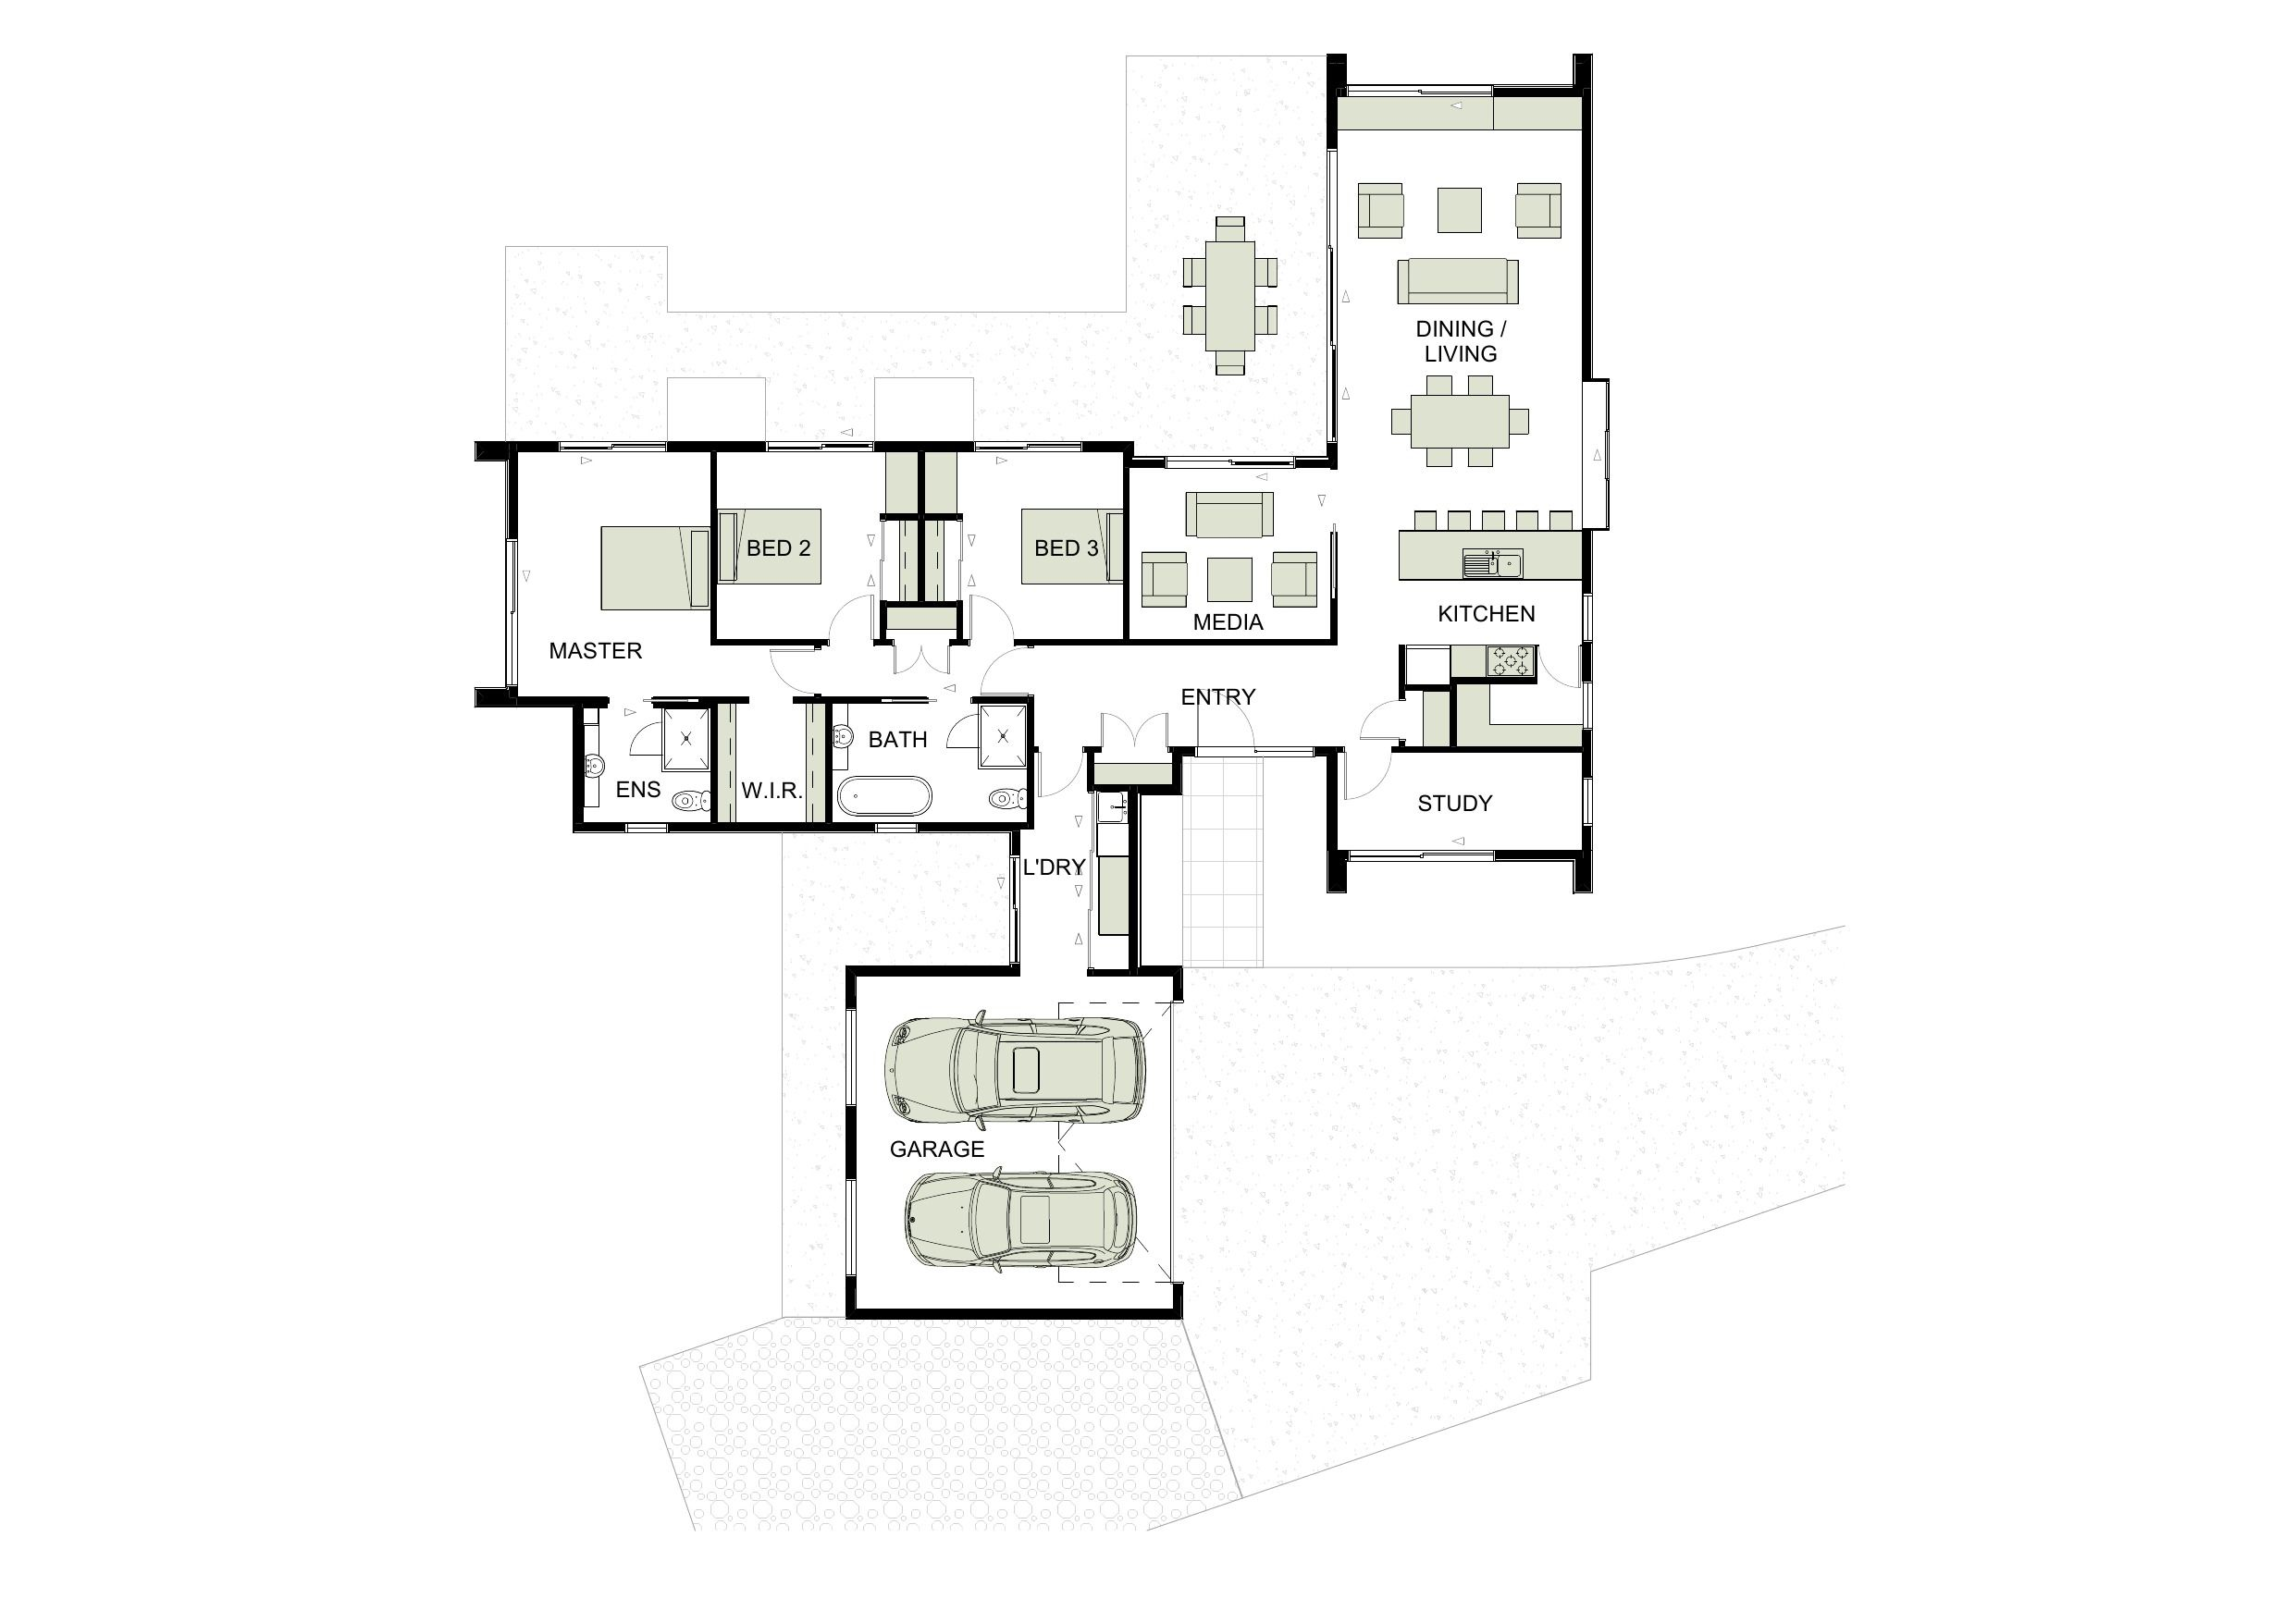 25 X 60 How To Plan Floor Plans House Plans